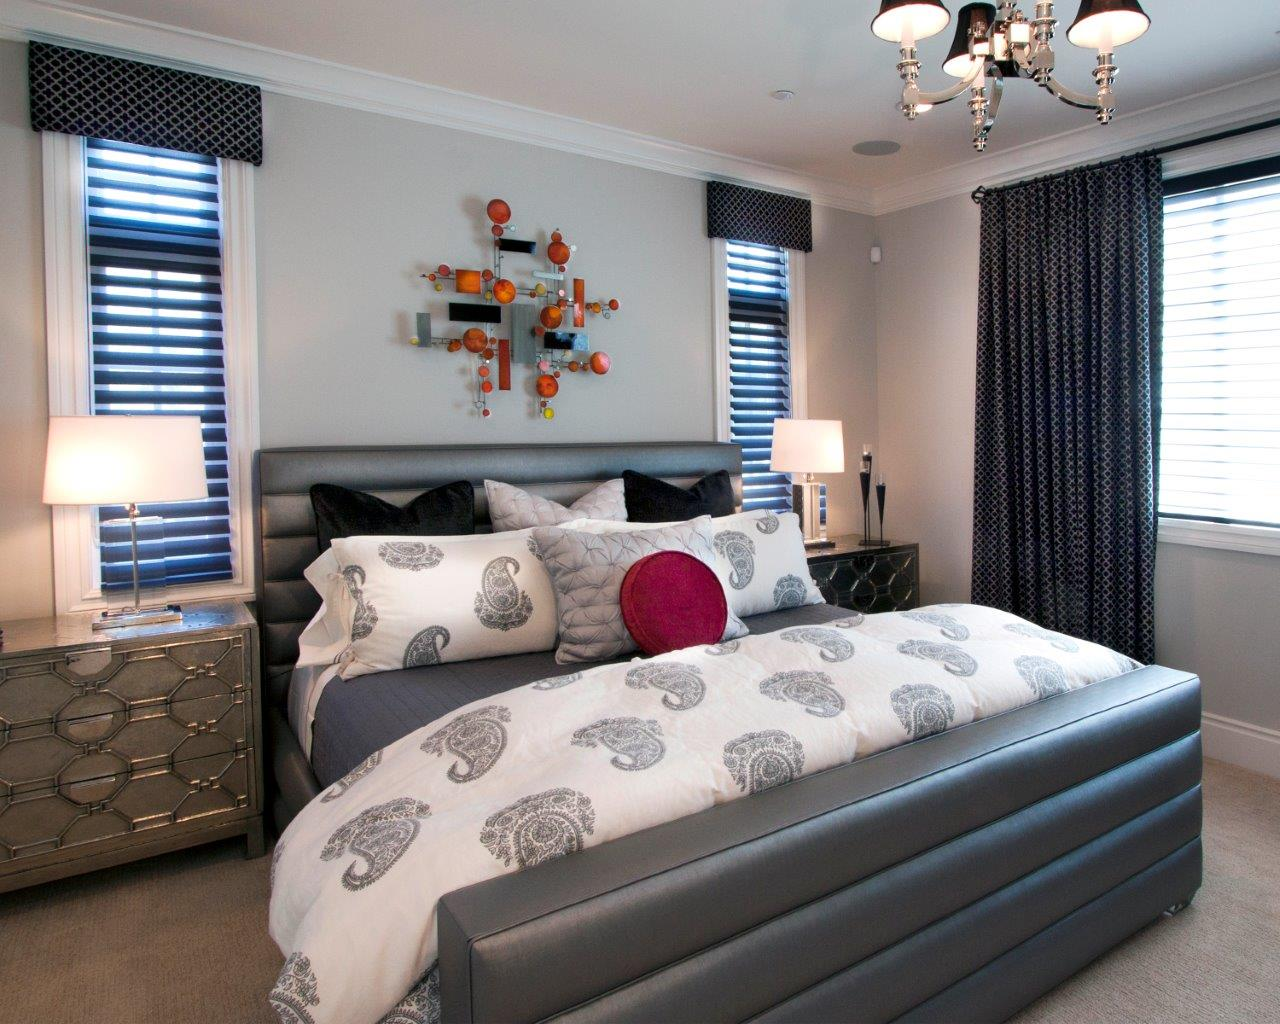 Bedroom Interior Design Bay Area Interior Designer Walnut Creek